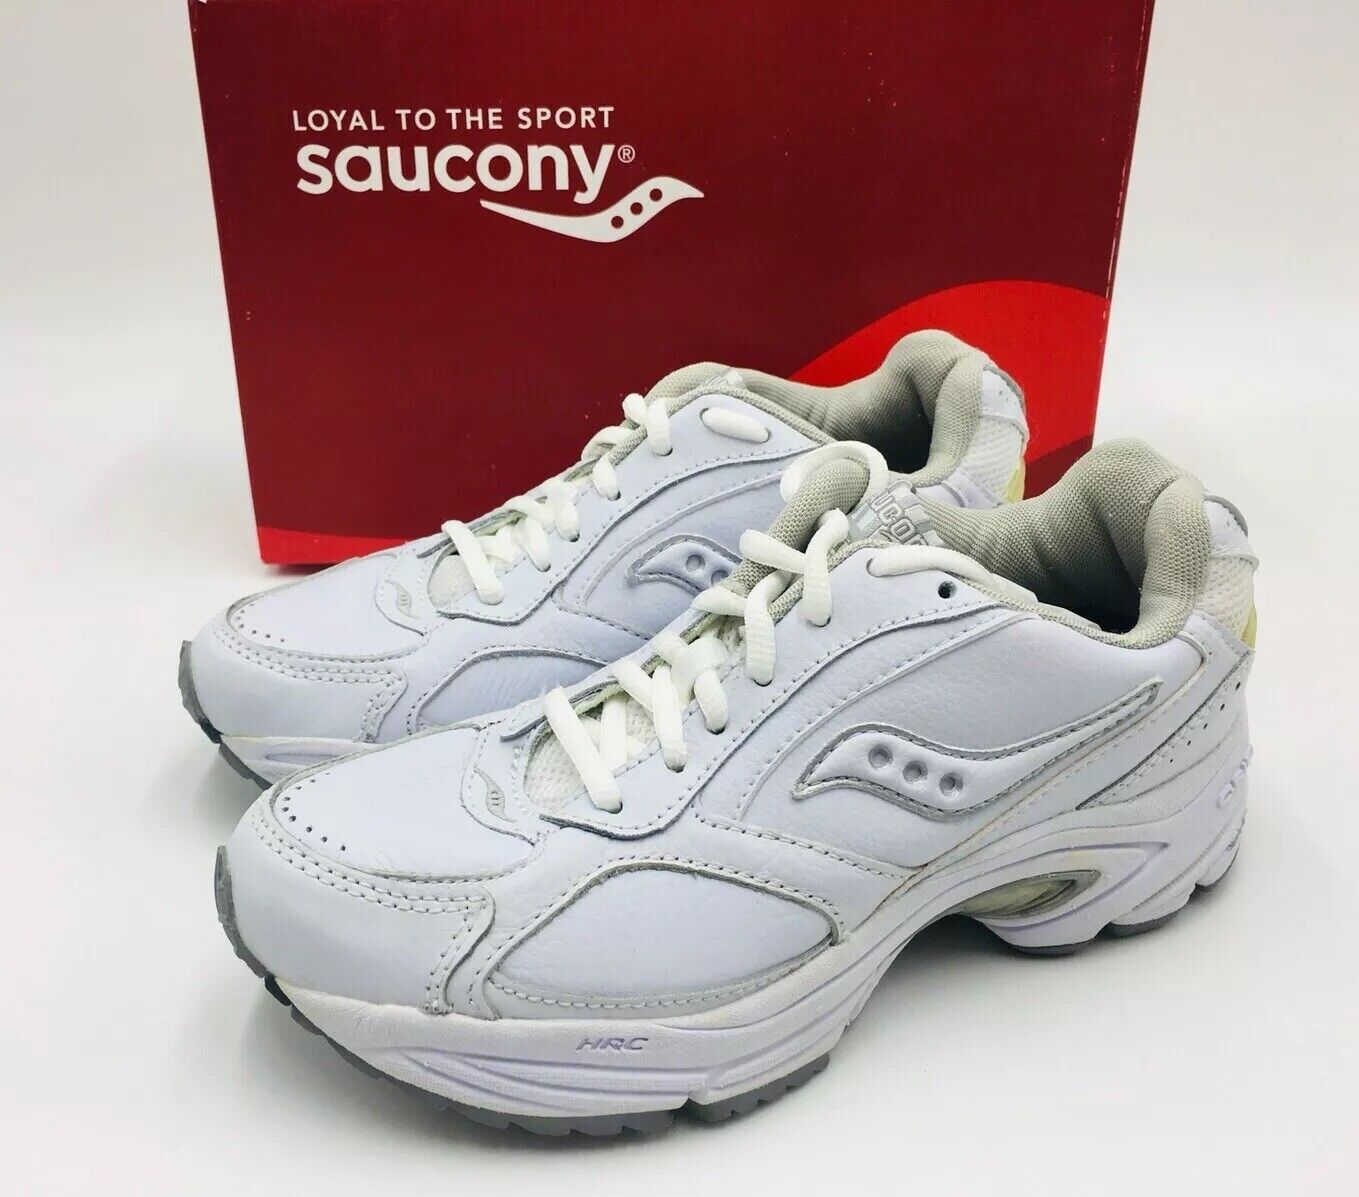 Saucony femmes Grille Tous Walker blanc   Sil chaussures Course Taille 5